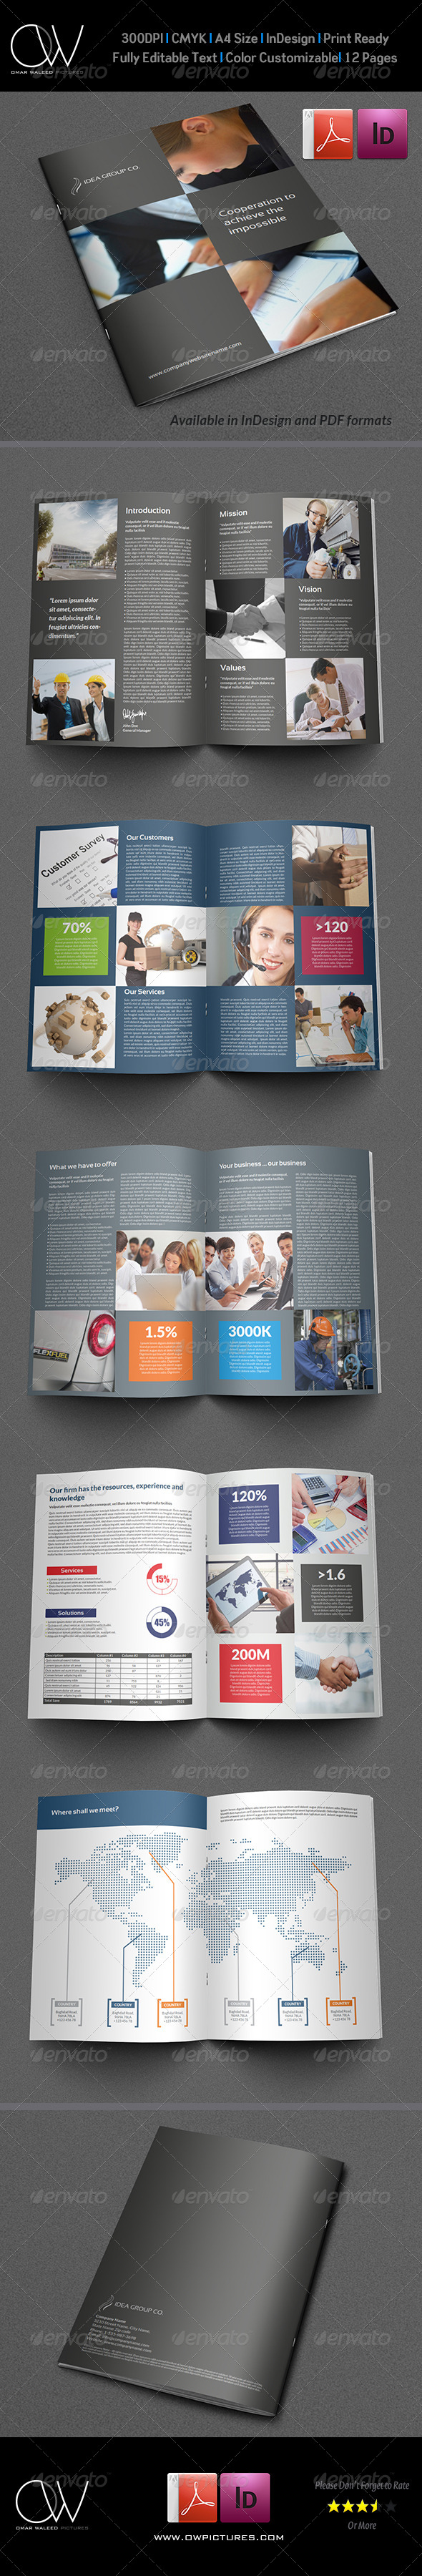 GraphicRiver Corporate Brochure Template Vol.17 12 Pages 6472077